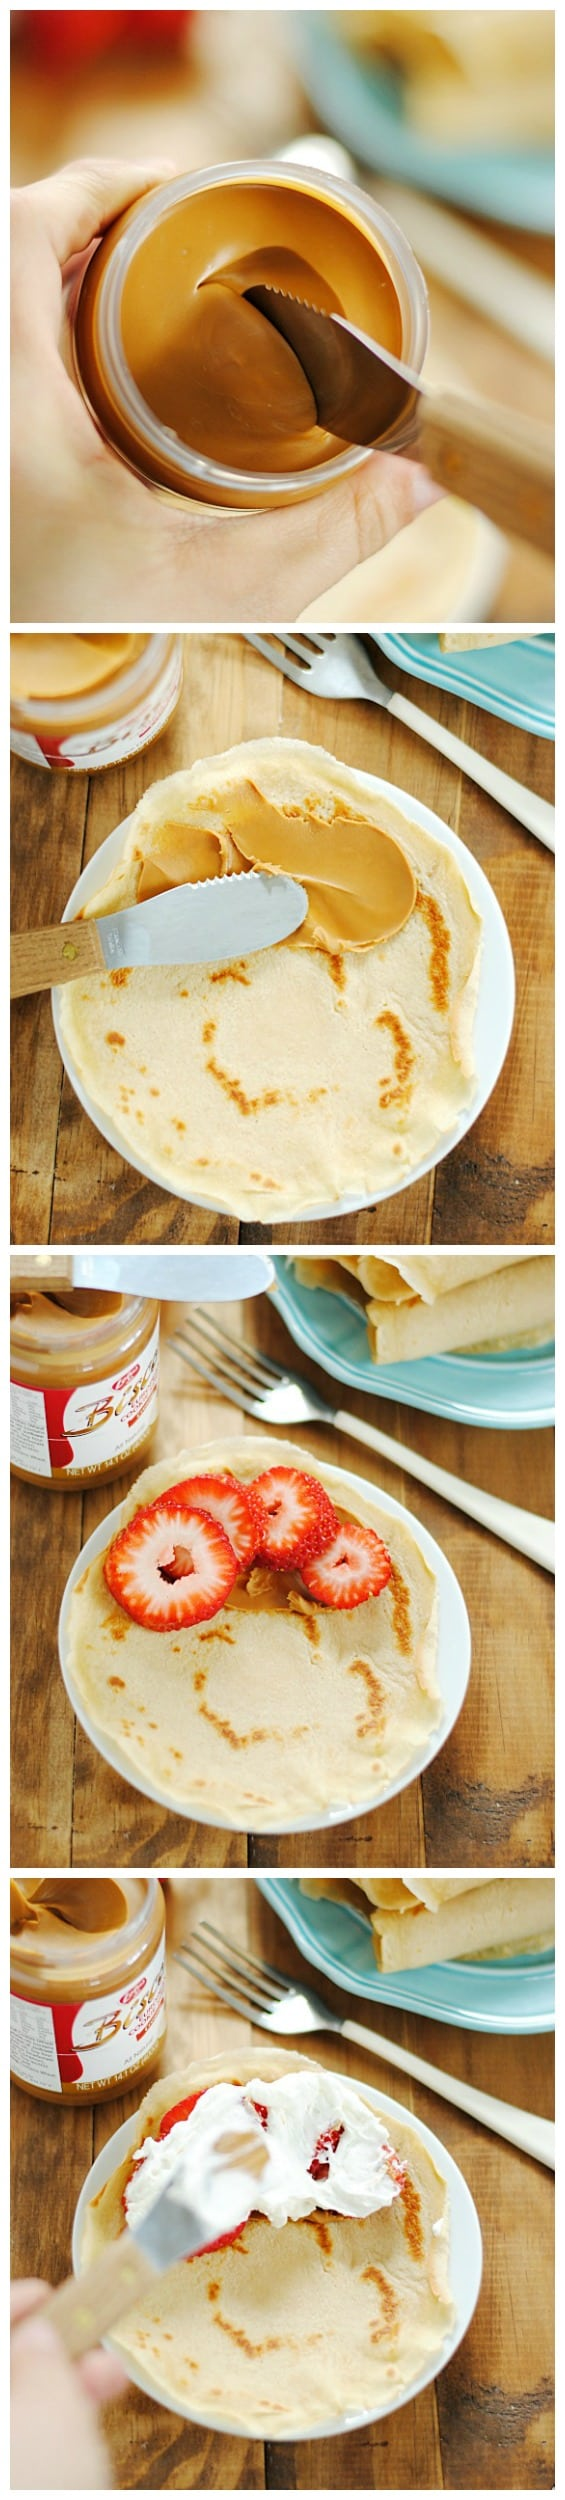 Whole Wheat Crepes | www.somethingswanky.com